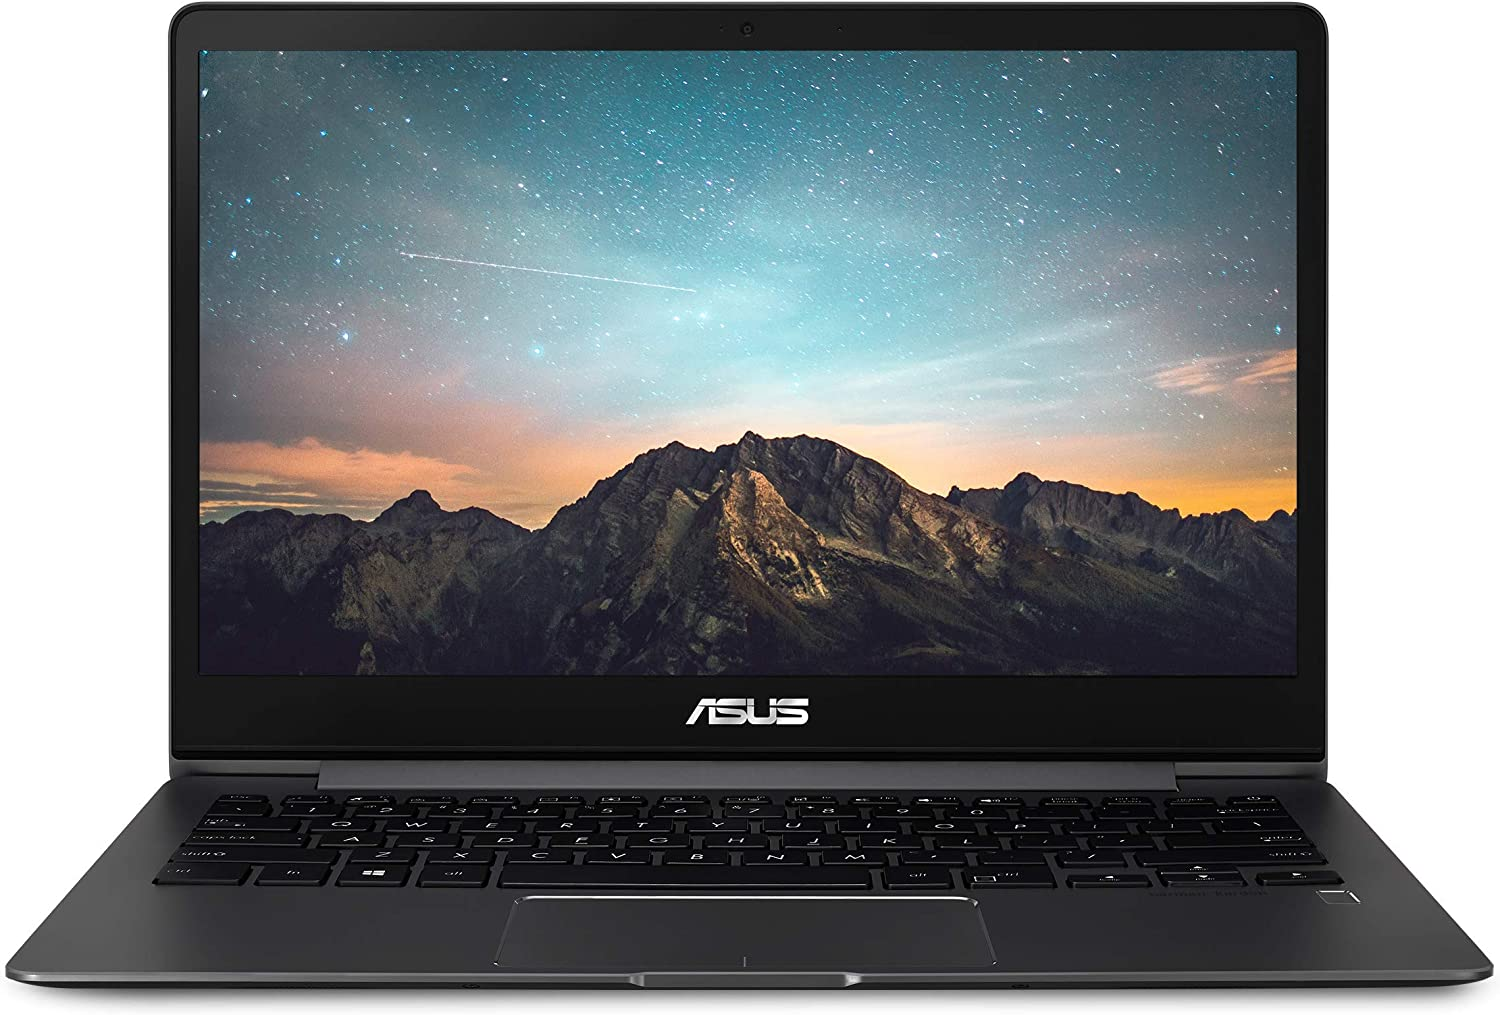 "Asus ZenBook 13 Ultra-Slim Laptop, 13.3"" Full HD Wideview, 8th Gen Intel Core I5-8265U, 8GB LPDDR3, 512GB PCIe SSD, Backlit KB, Fingerprint, Slate Gray, Windows 10, UX331FA-AS51 (Renewed)"